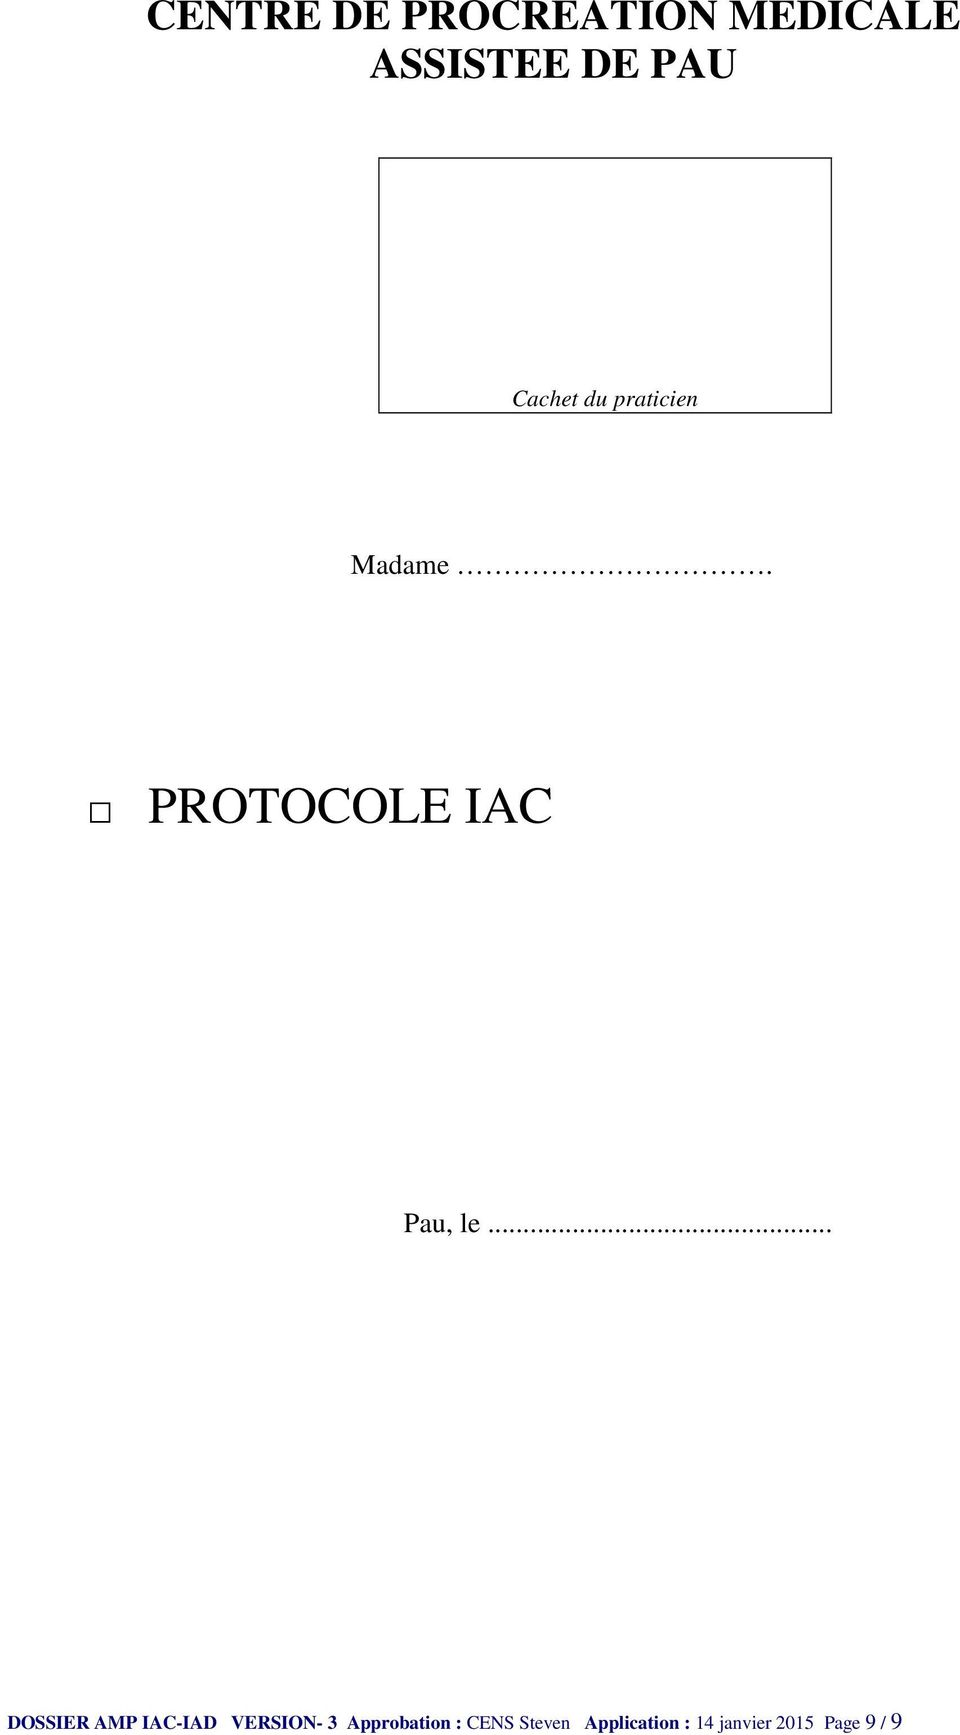 .. DOSSIER AMP IAC-IAD VERSION- 3 Approbation :